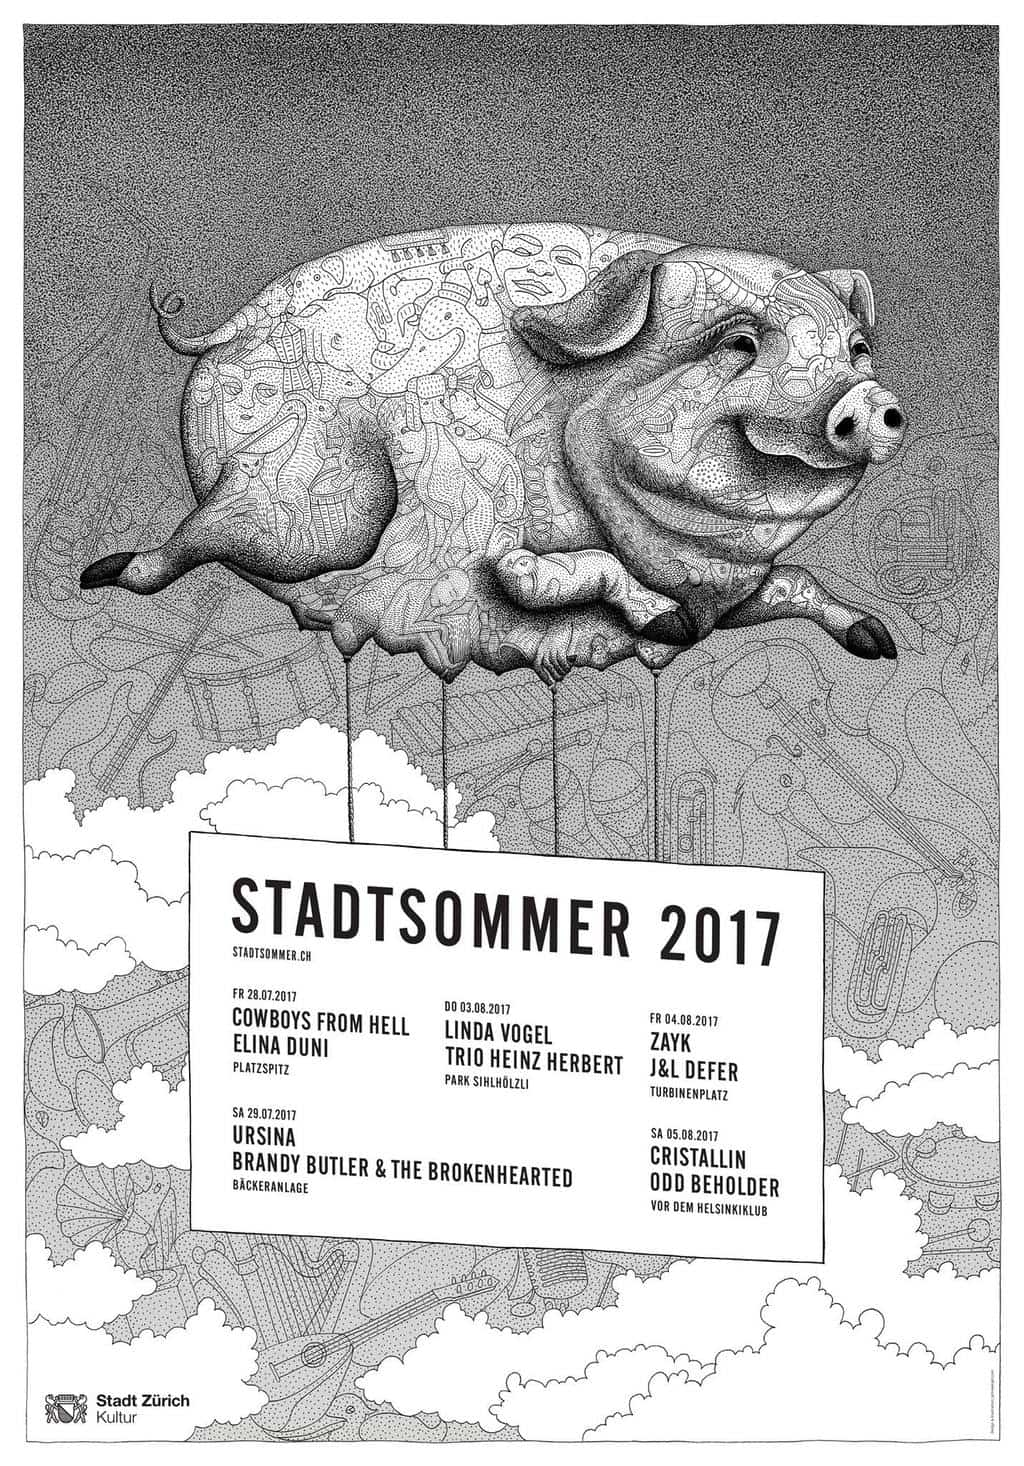 Stadtsommer Zürich Concerts July & August 2017